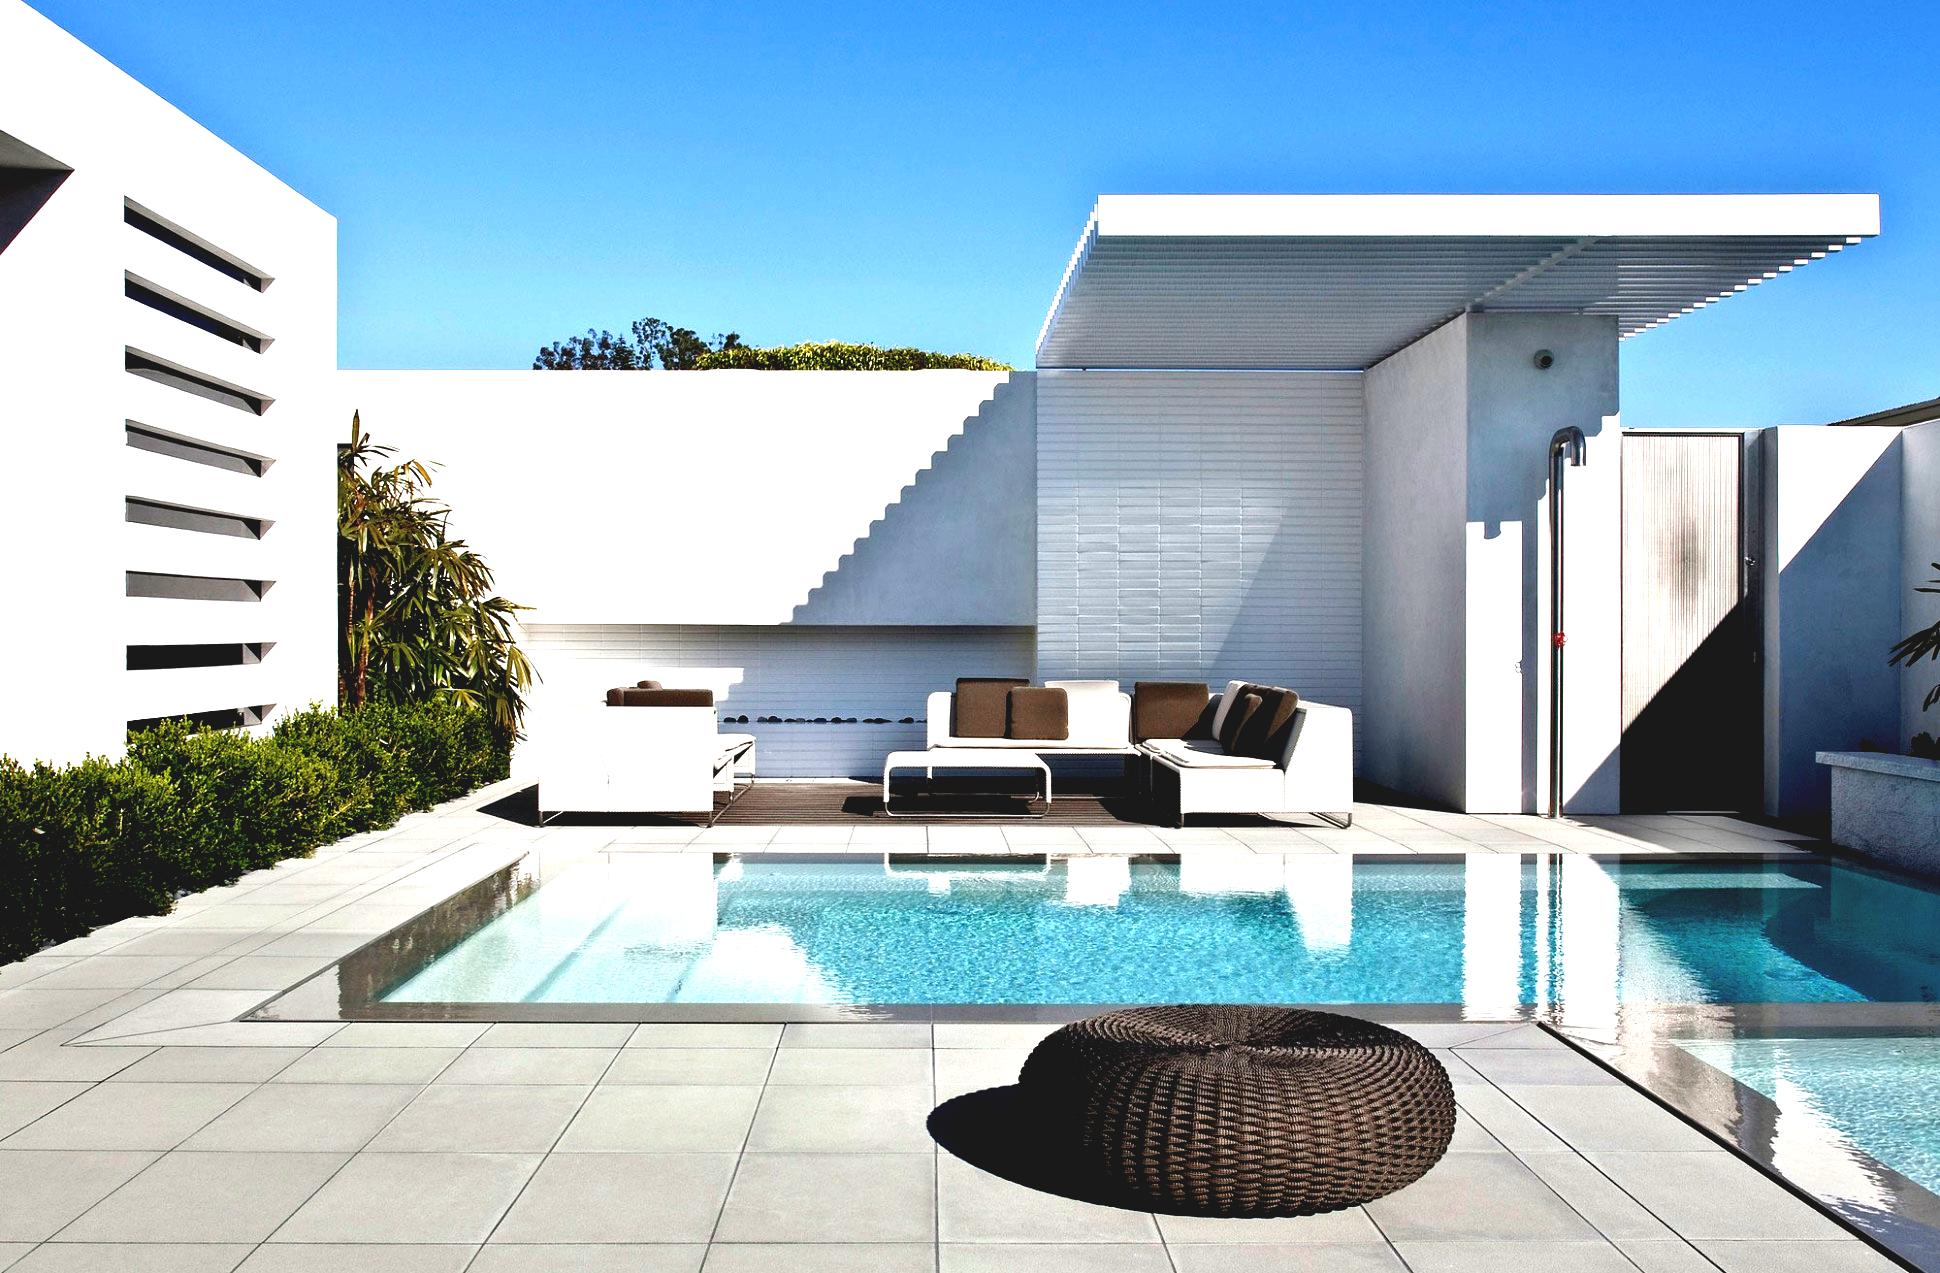 25 ideas about modern pool designs sheplanet for Pool design 2016